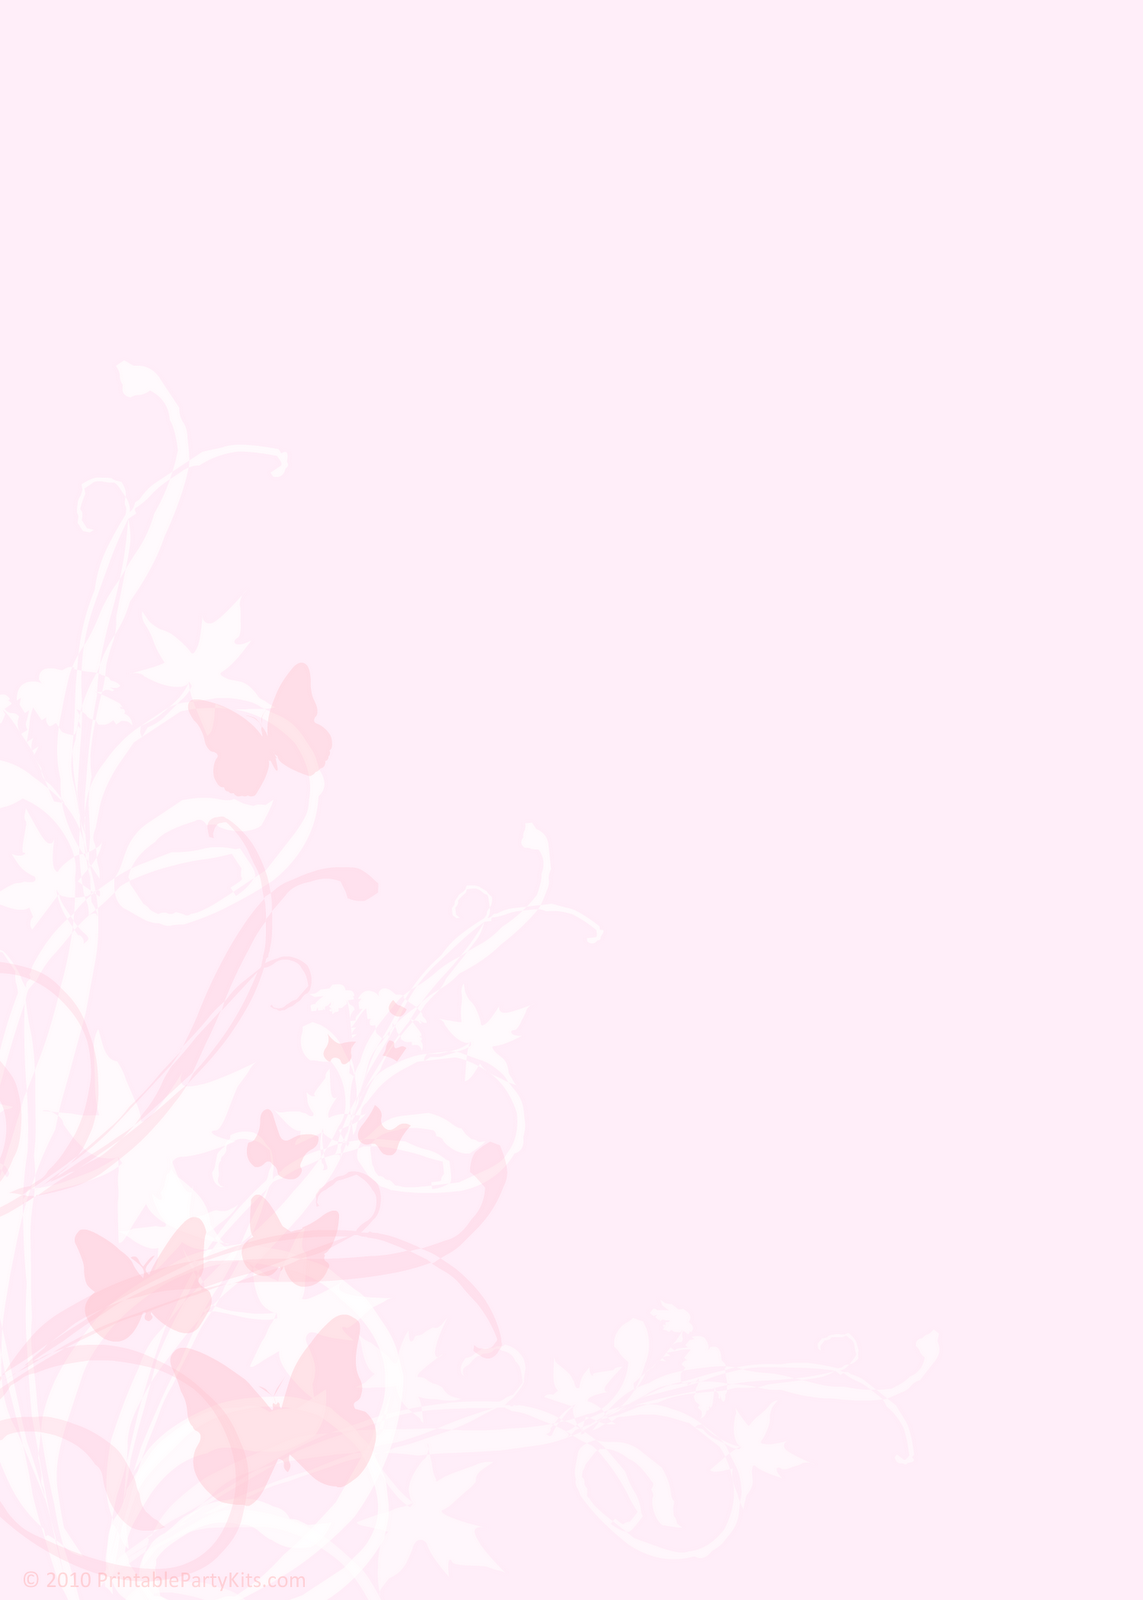 Click on the free blank pink